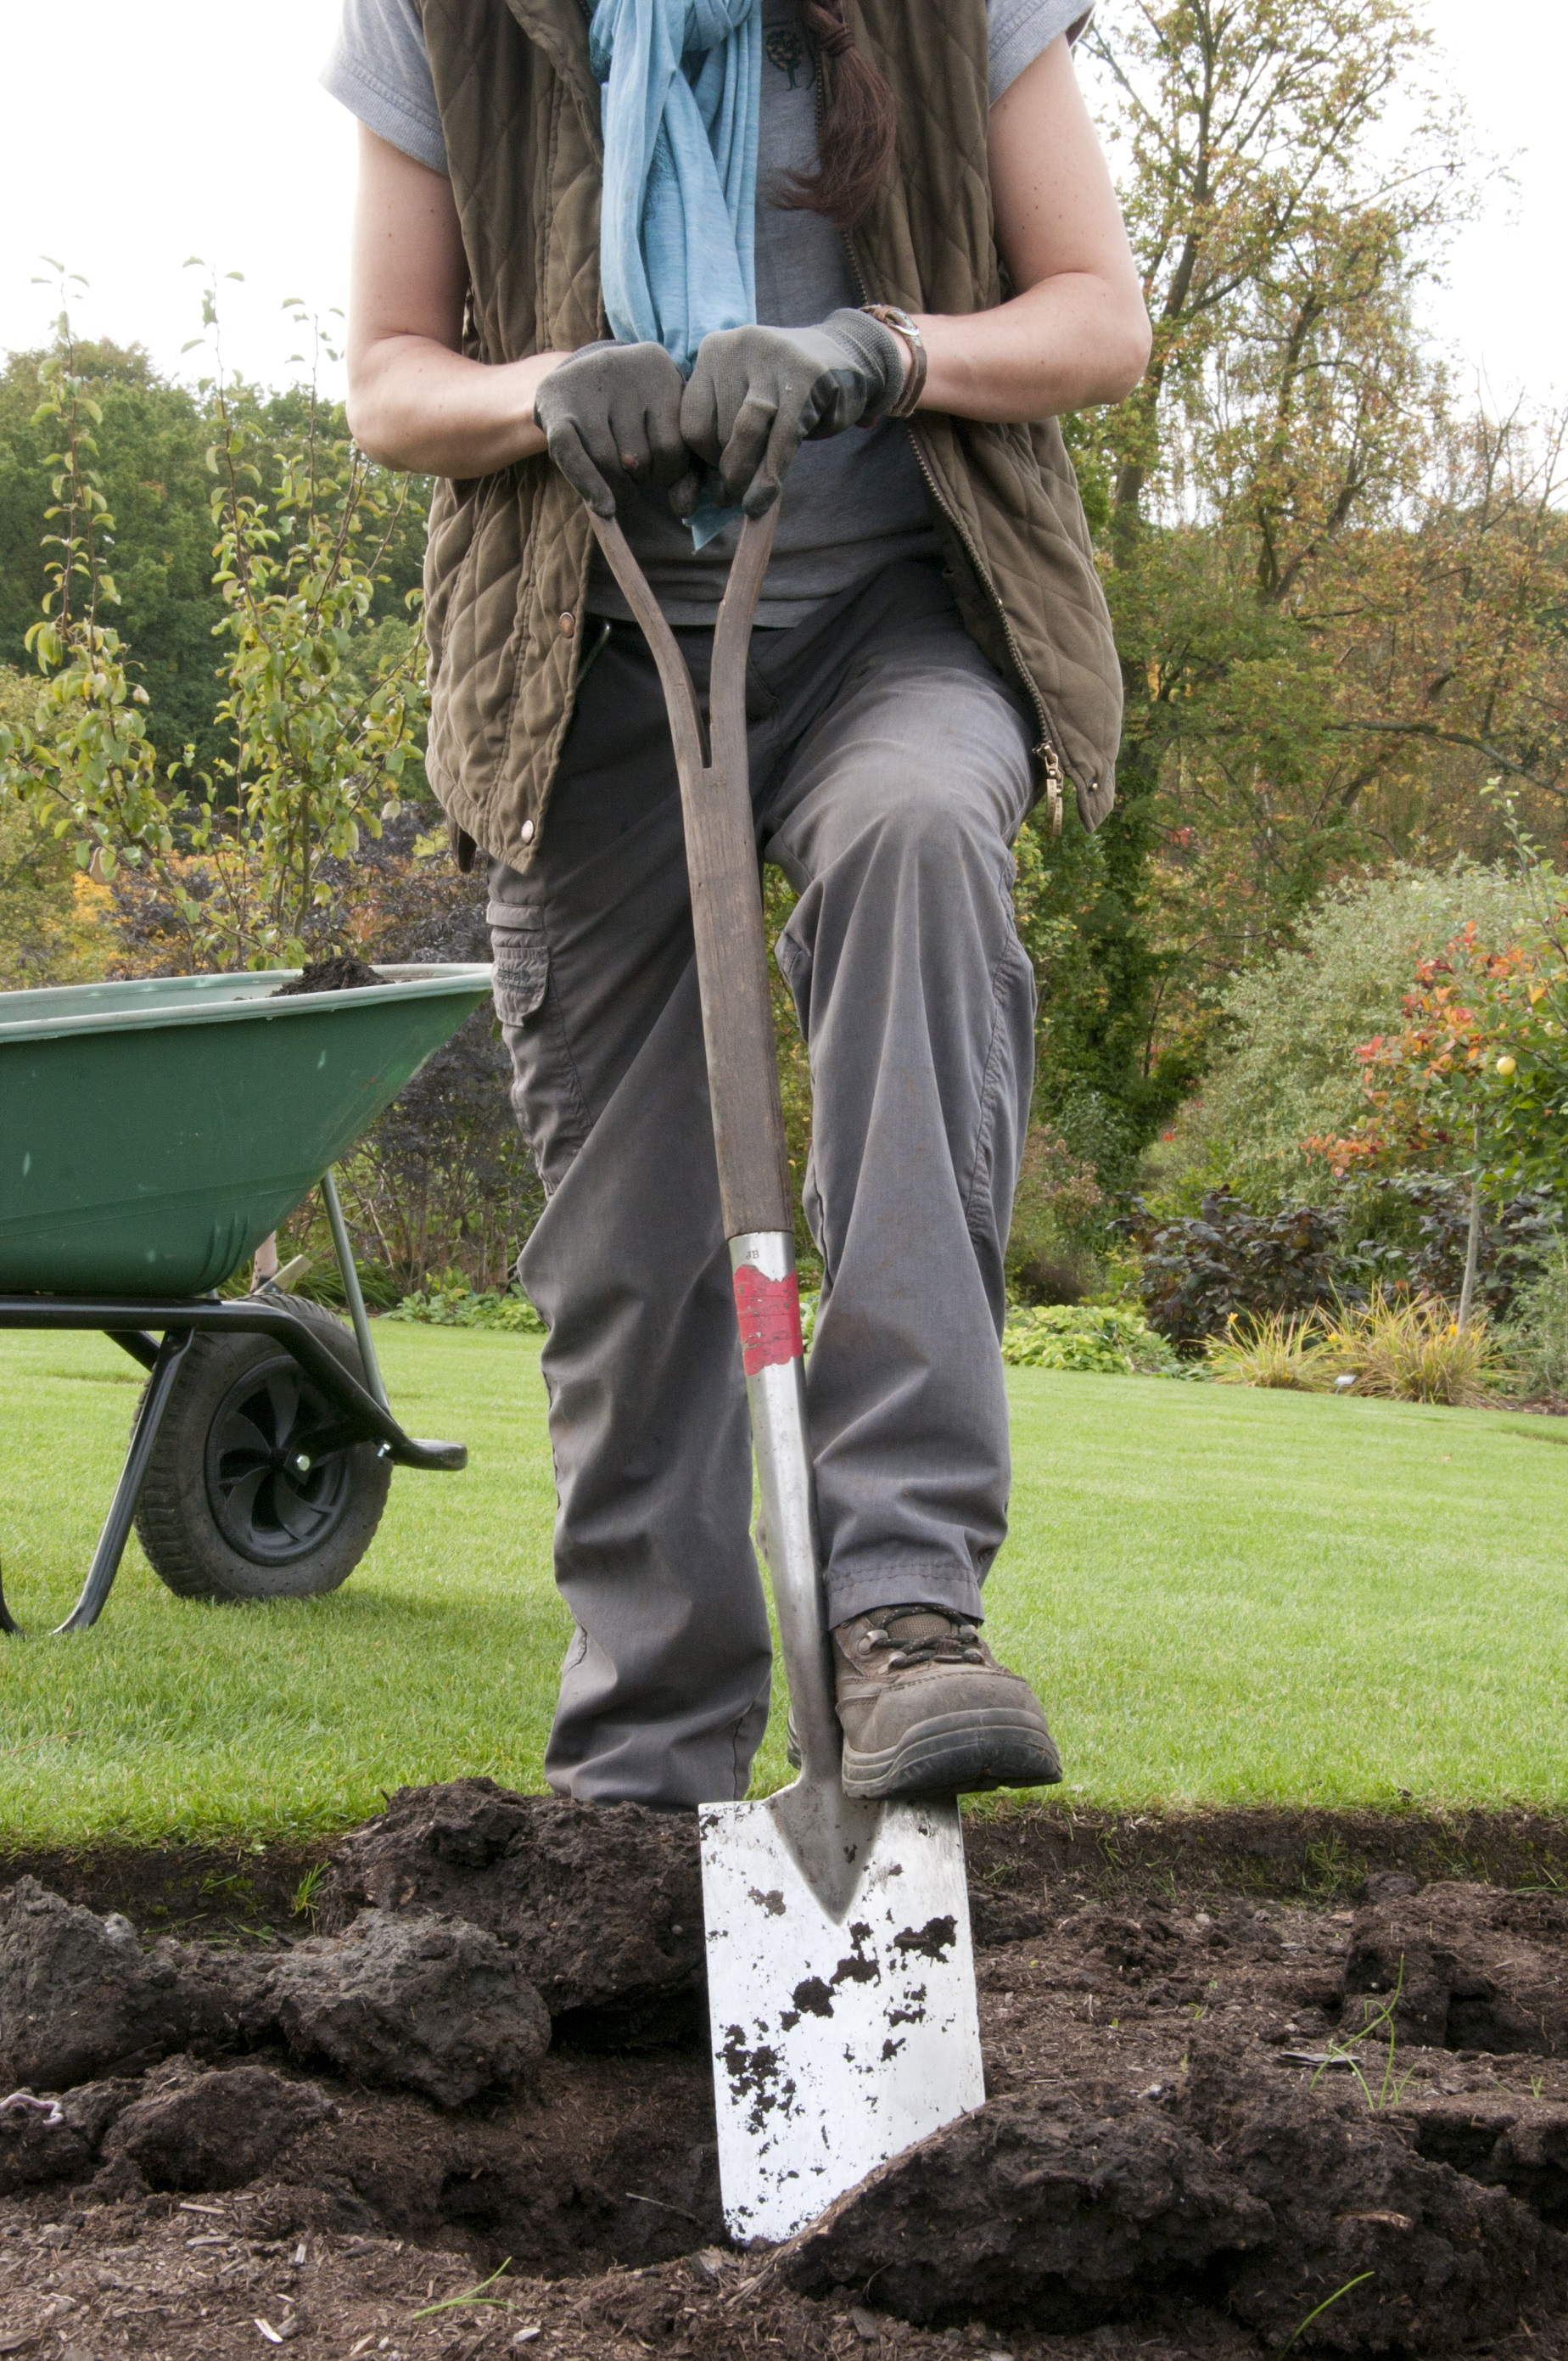 Digging a planting hole at RHS Garden Harlow Carr.